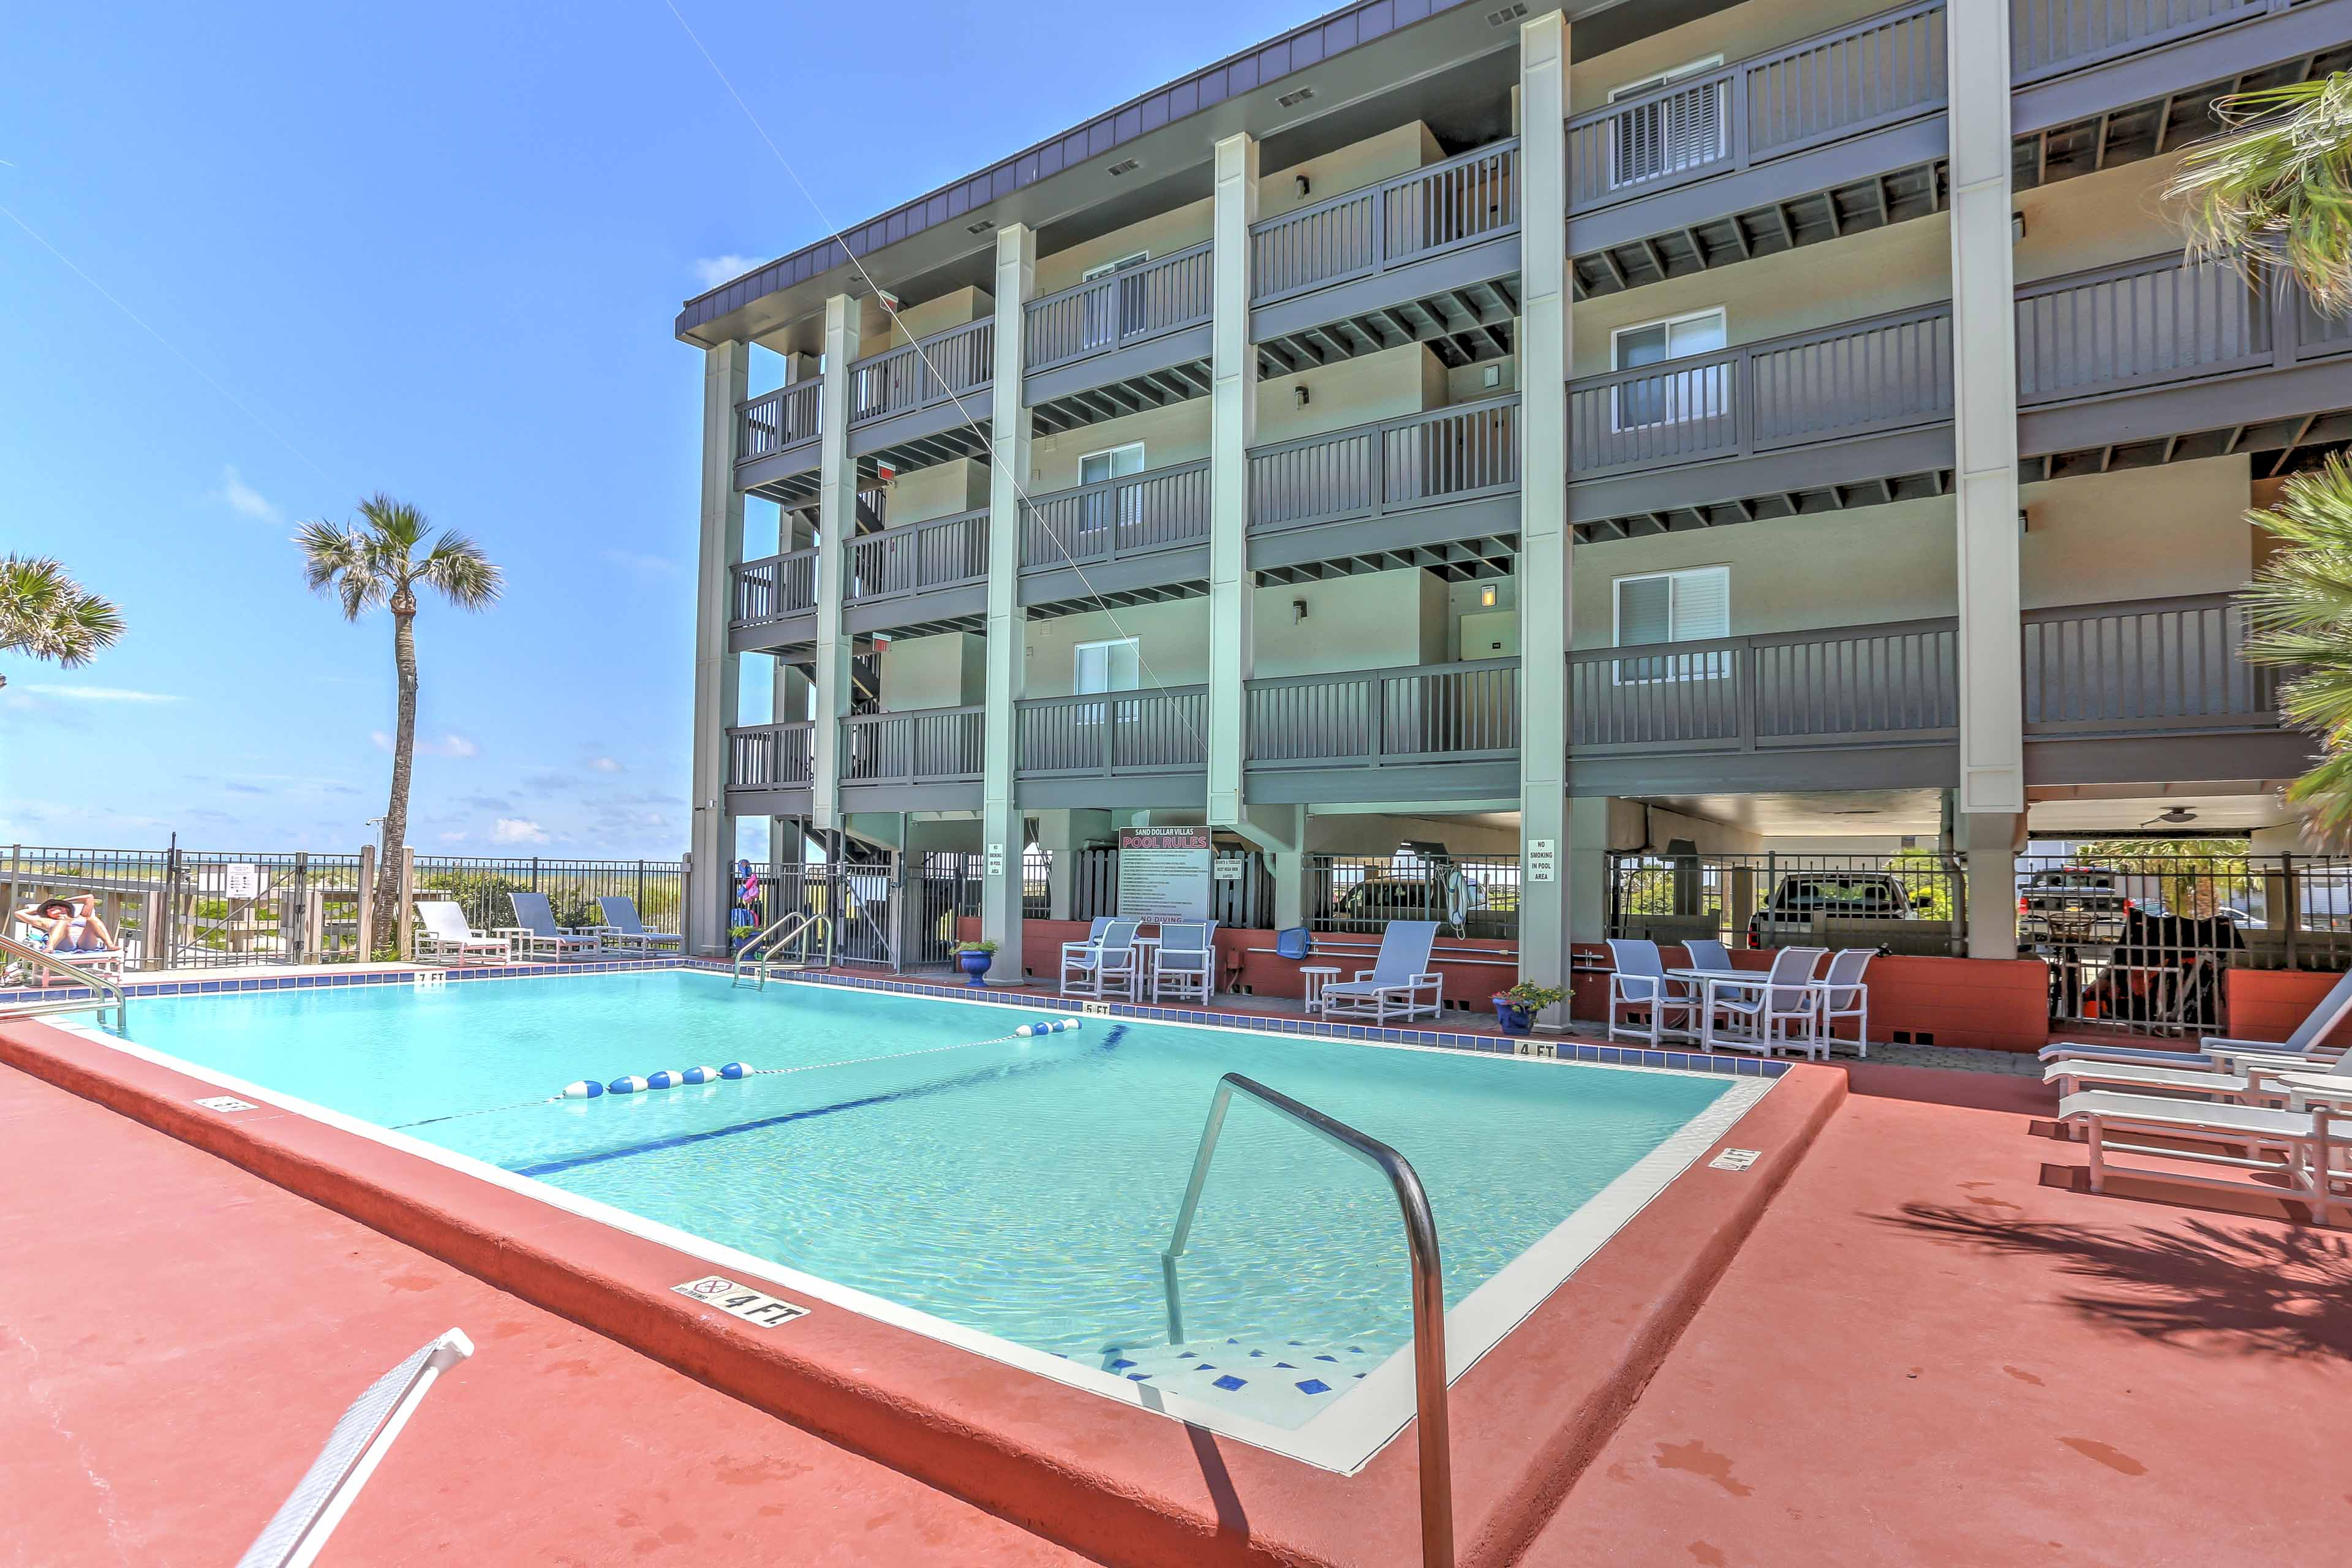 Spend your vacation poolside at this exclusive Fernandina Beach vacation rental!